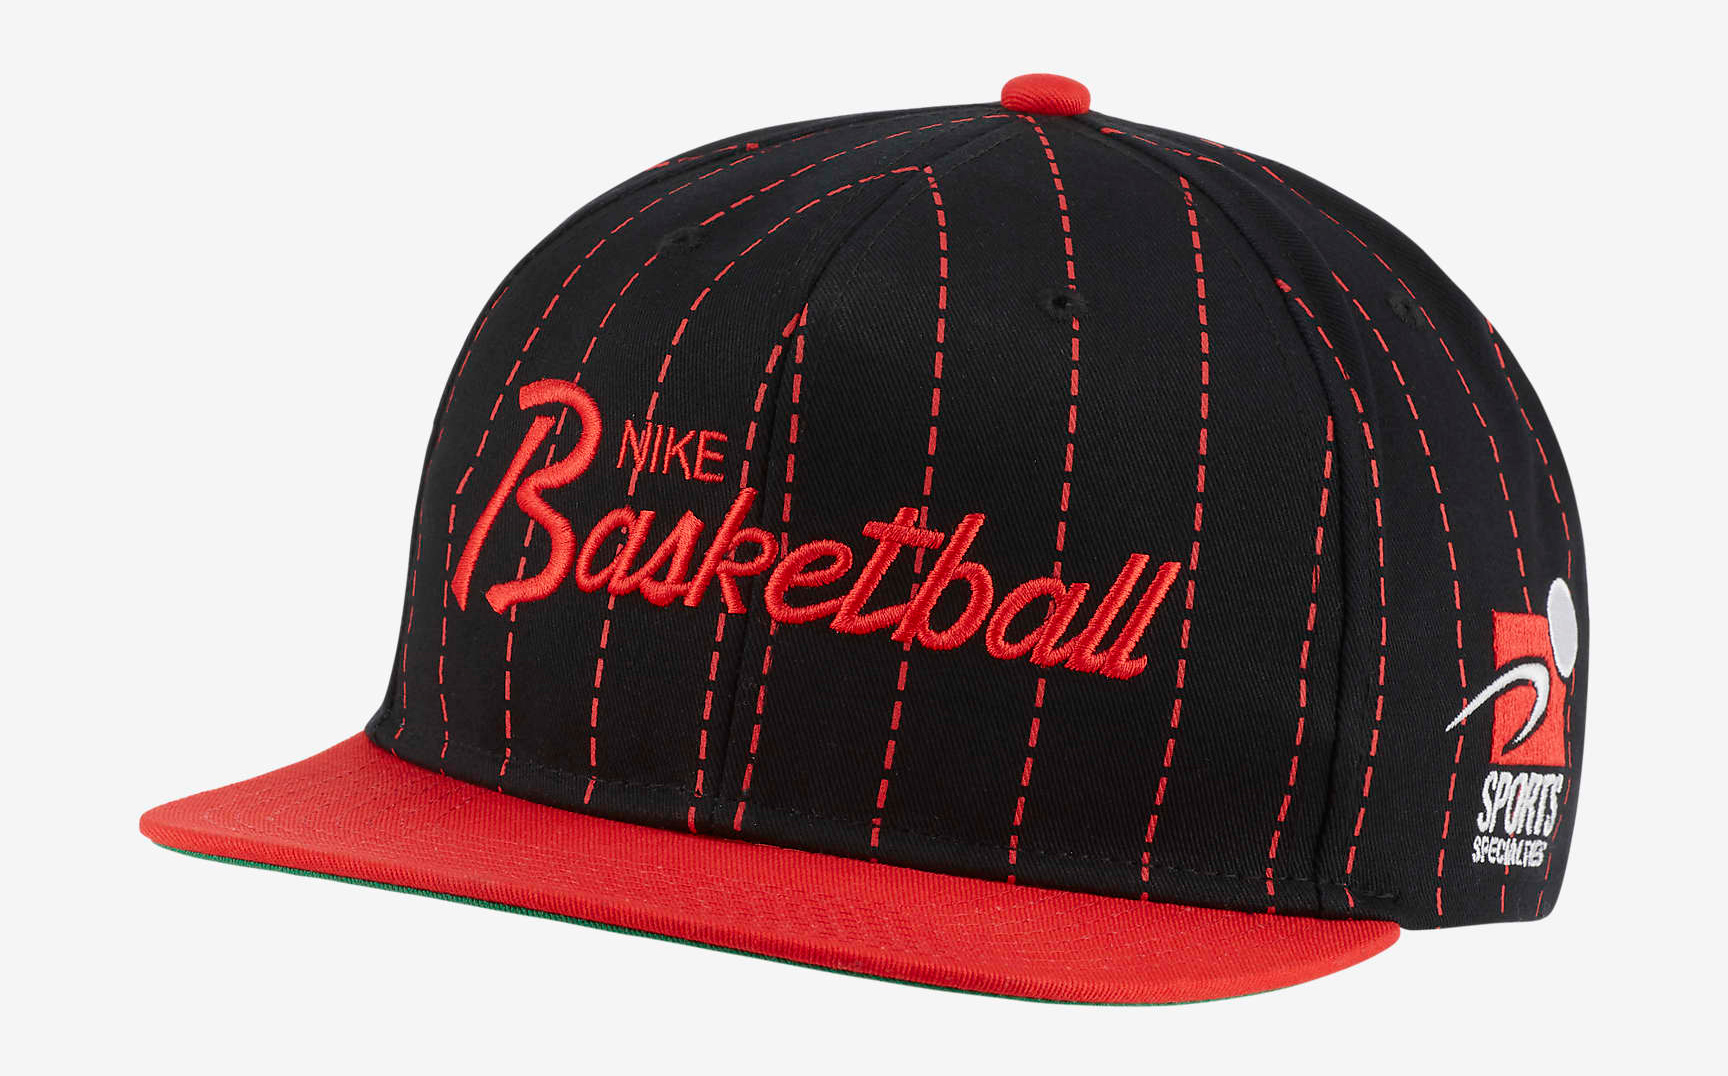 nike-basketball-hat-black-chile-red-1